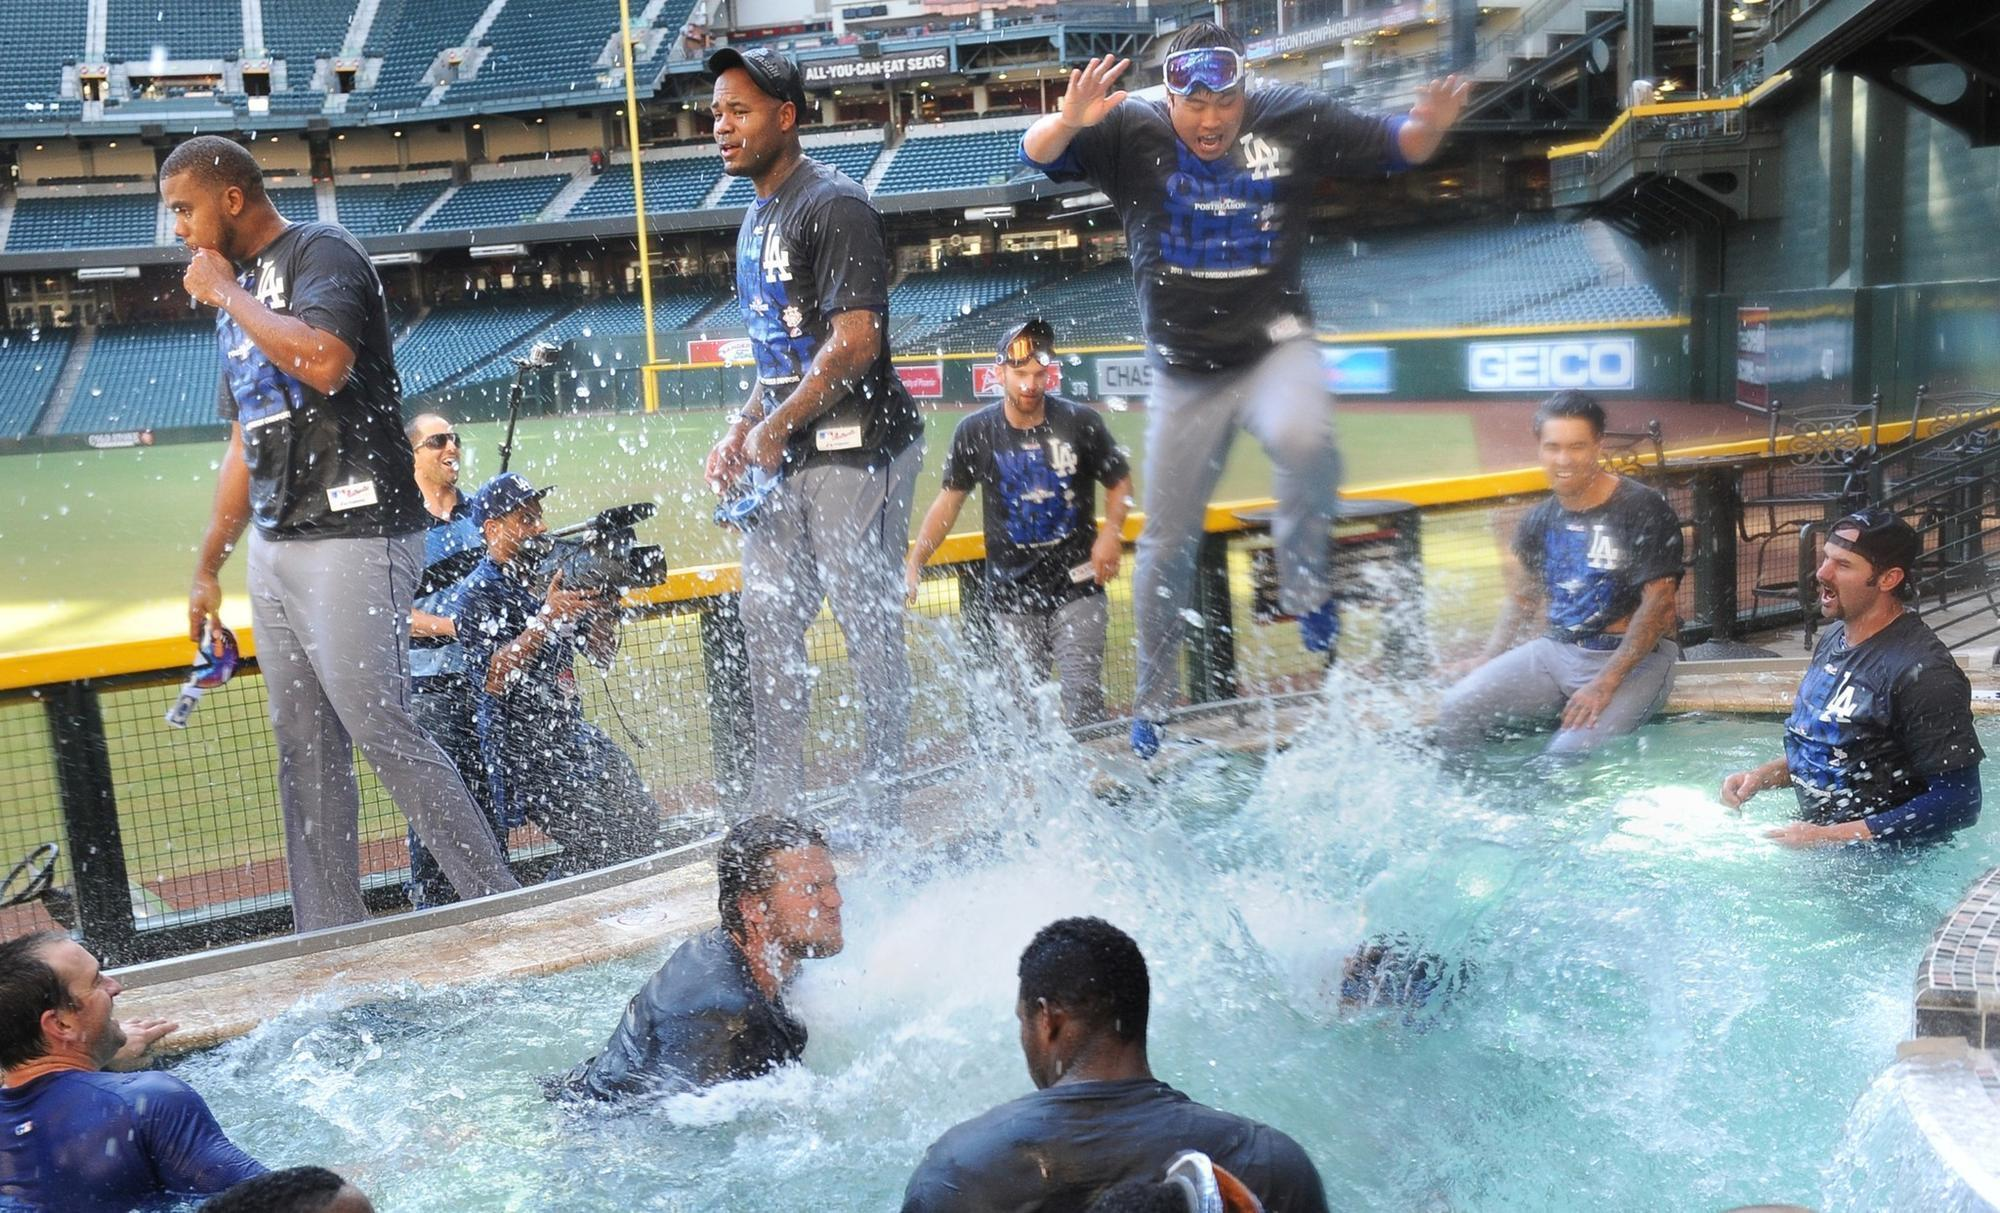 Dodgers hope to sweep Diamondbacks — but no plans for a pool party - Orlando Sentinel